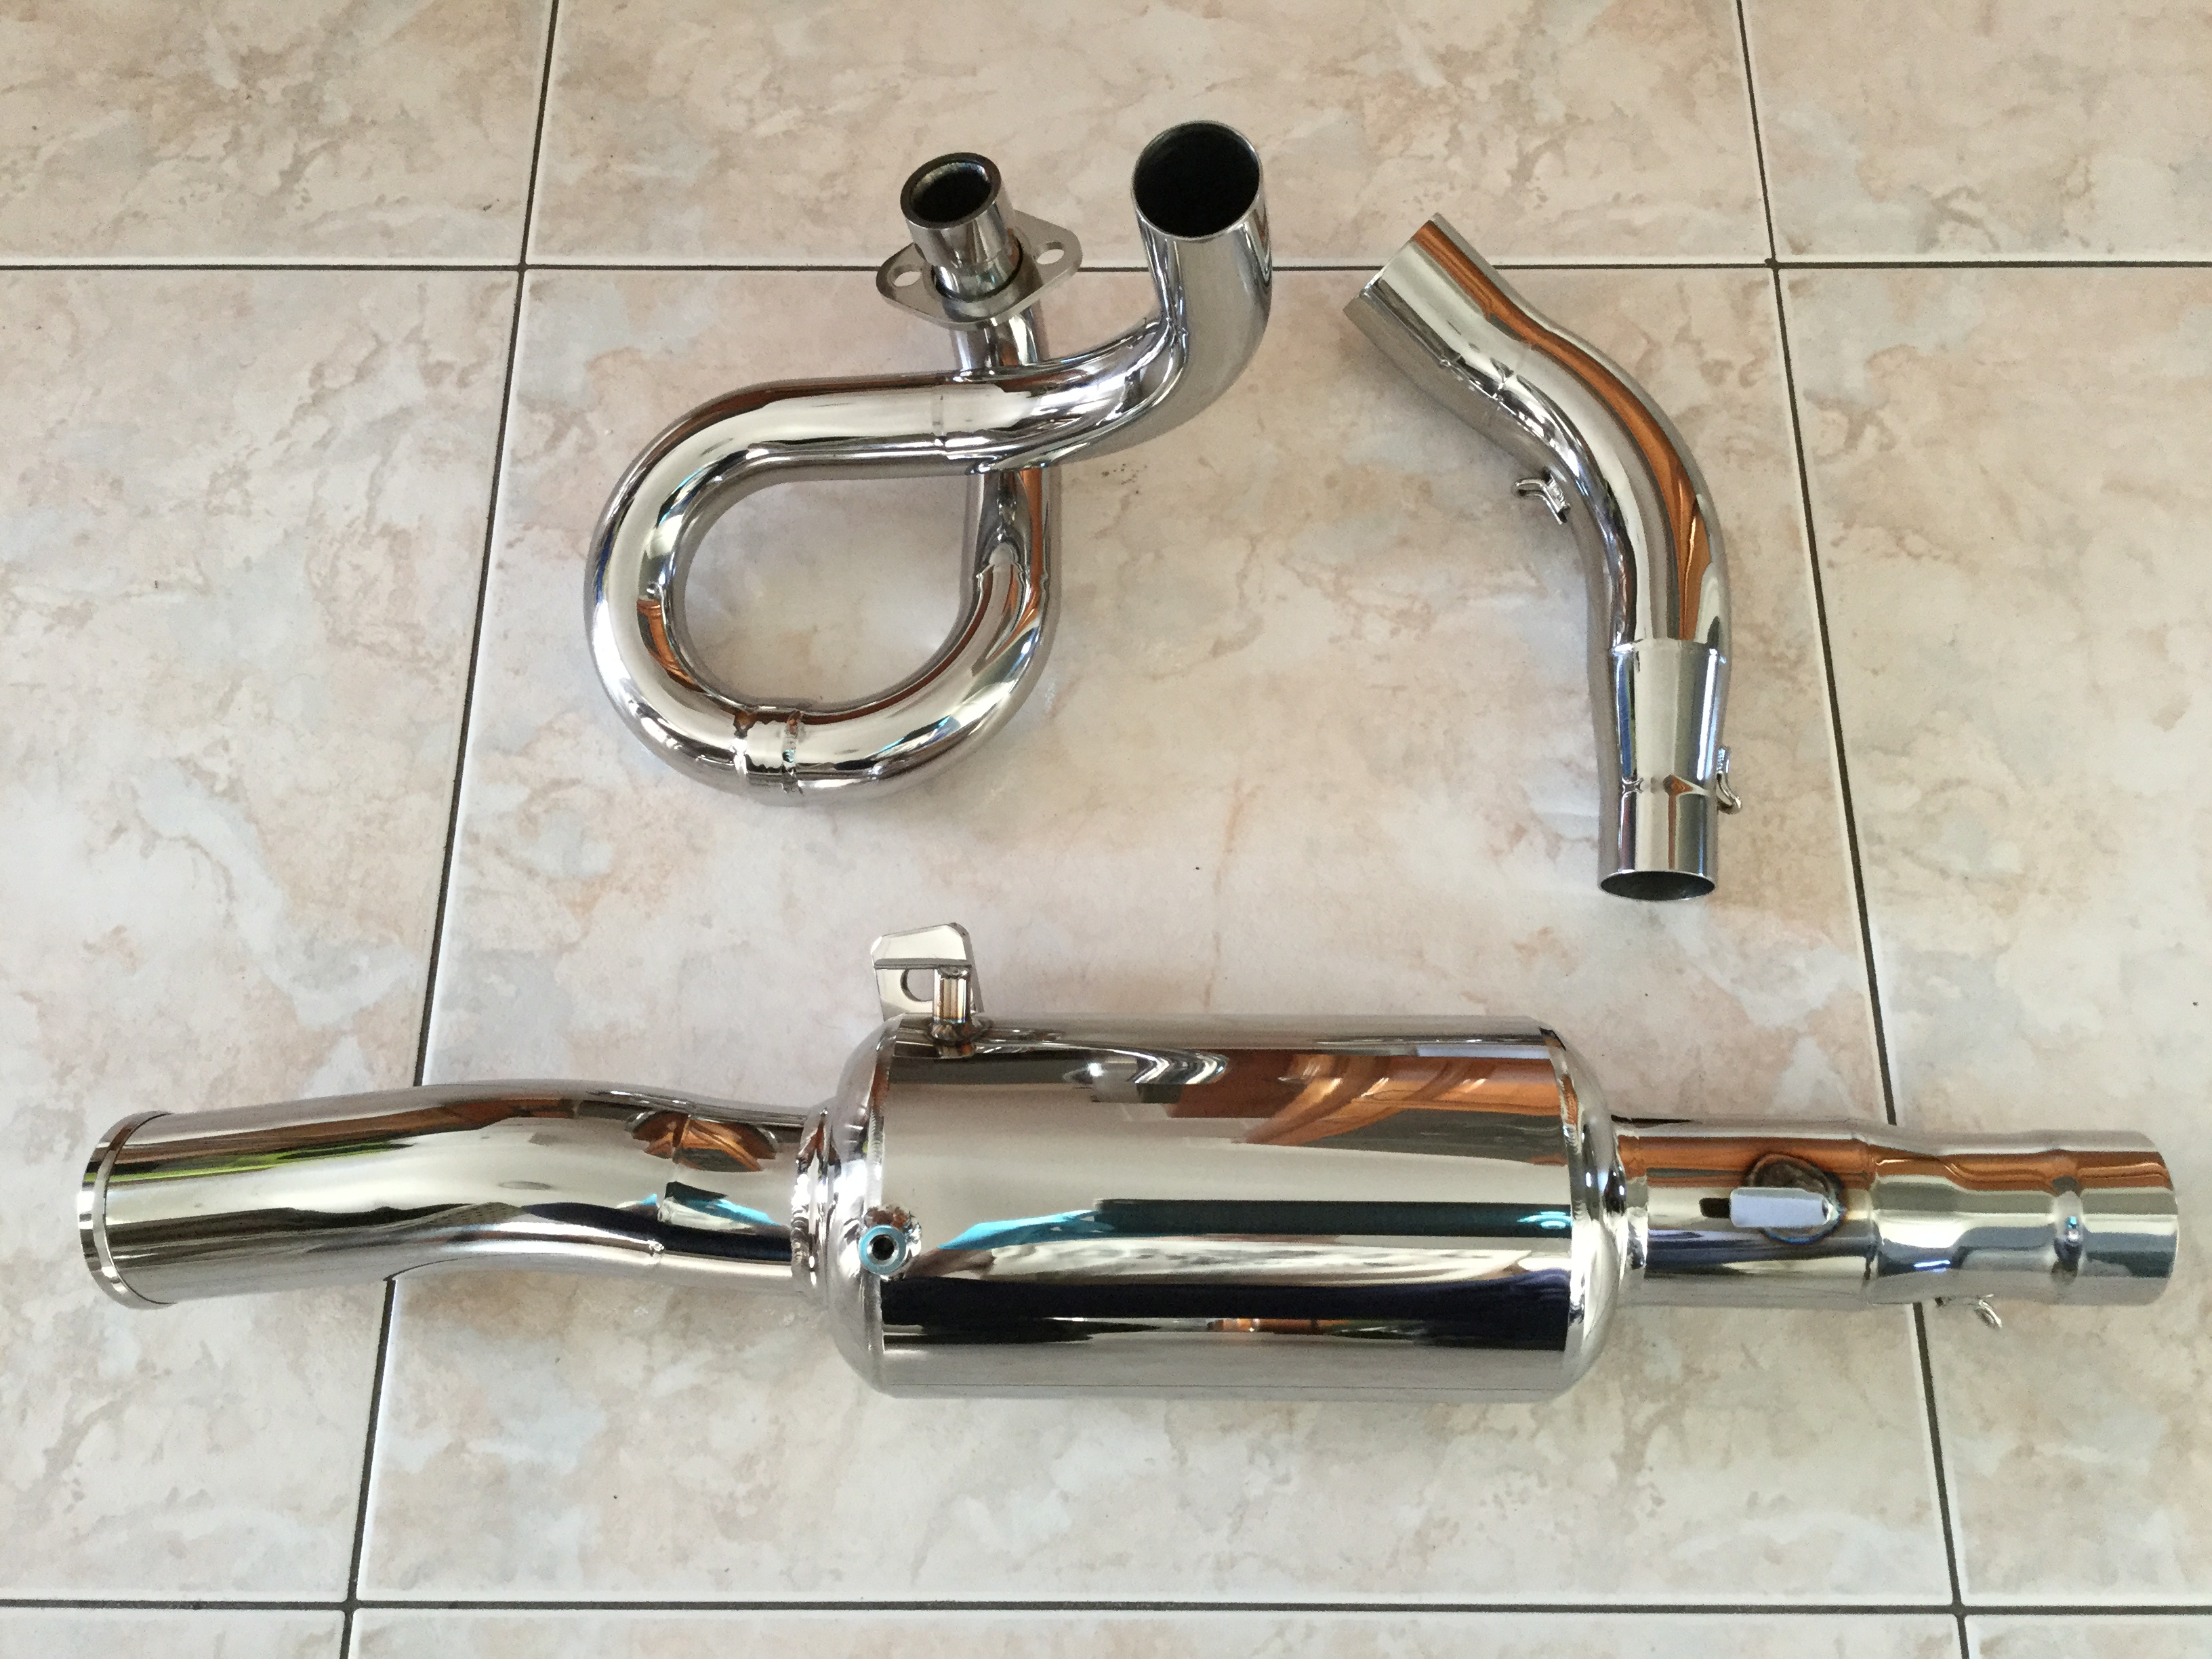 Anyone purchased an exhaust directly from HotLap?-5ef67d4a-c72e-41db-ae05-cf98fc6baa21.jpeg